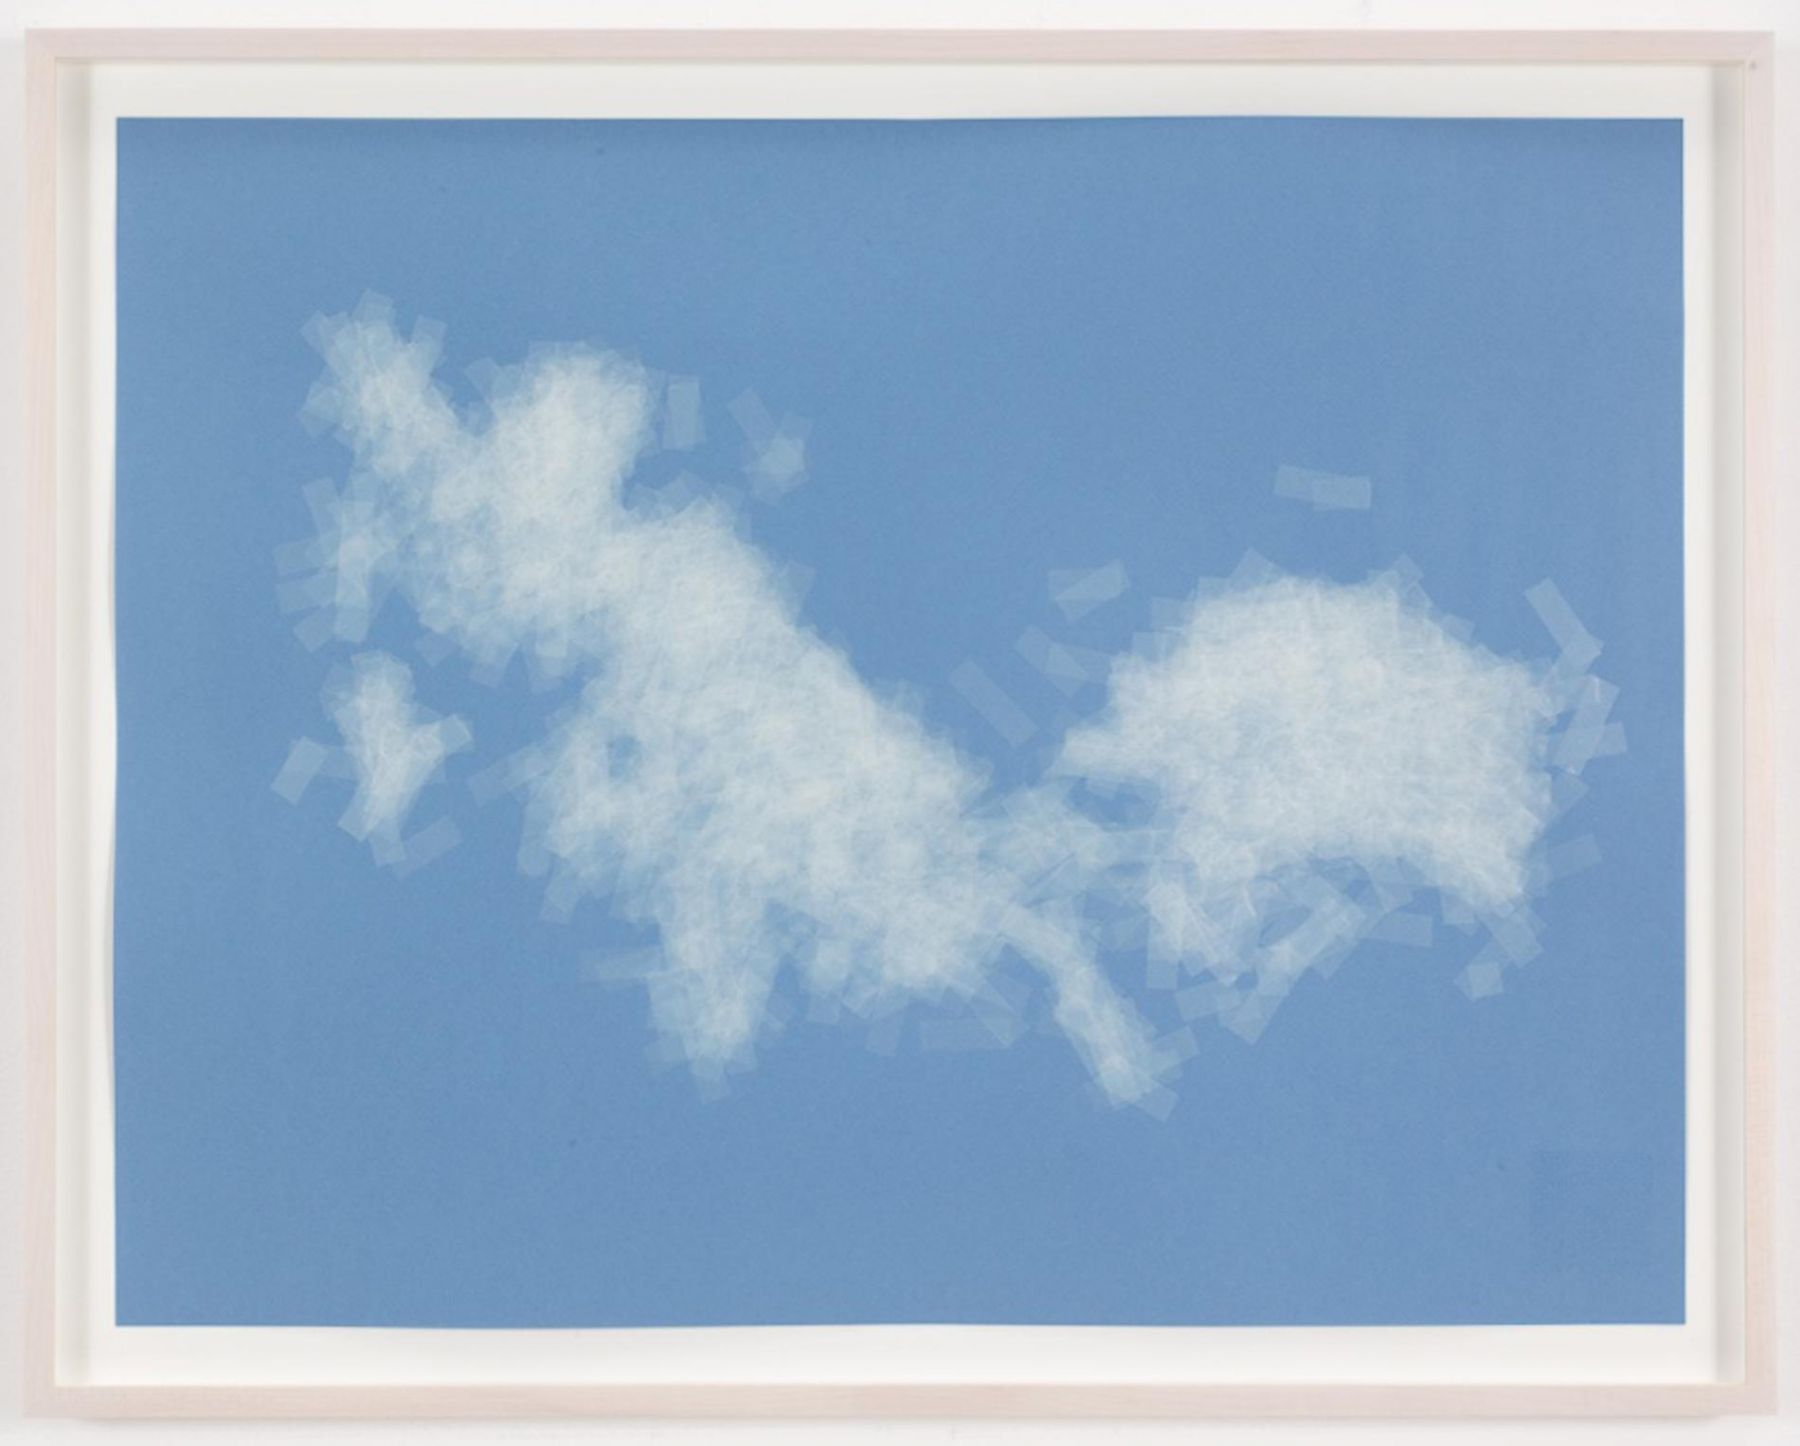 , SPENCER FINCH, Cloud (cumulus fractus, Massachusetts, E.D.), 2014, Scotch tape on paper, 19 3/4 x 25 1/2 in. (sheet), 21 5/8 x 27 1/2 in. (framed)